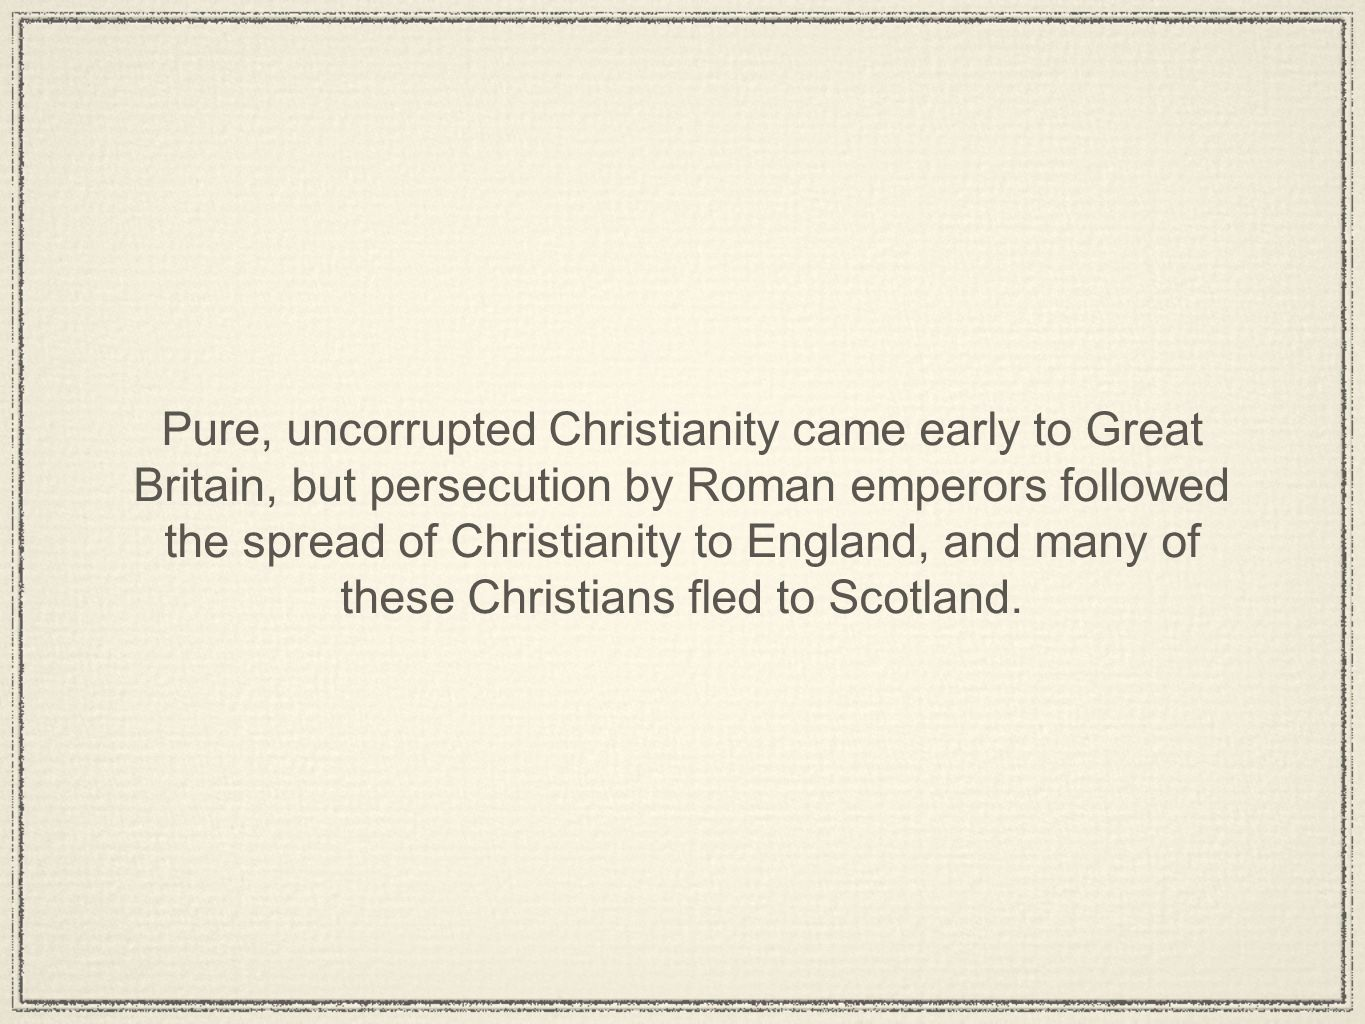 Pure, uncorrupted Christianity came early to Great Britain, but persecution by Roman emperors followed the spread of Christianity to England, and many of these Christians fled to Scotland.